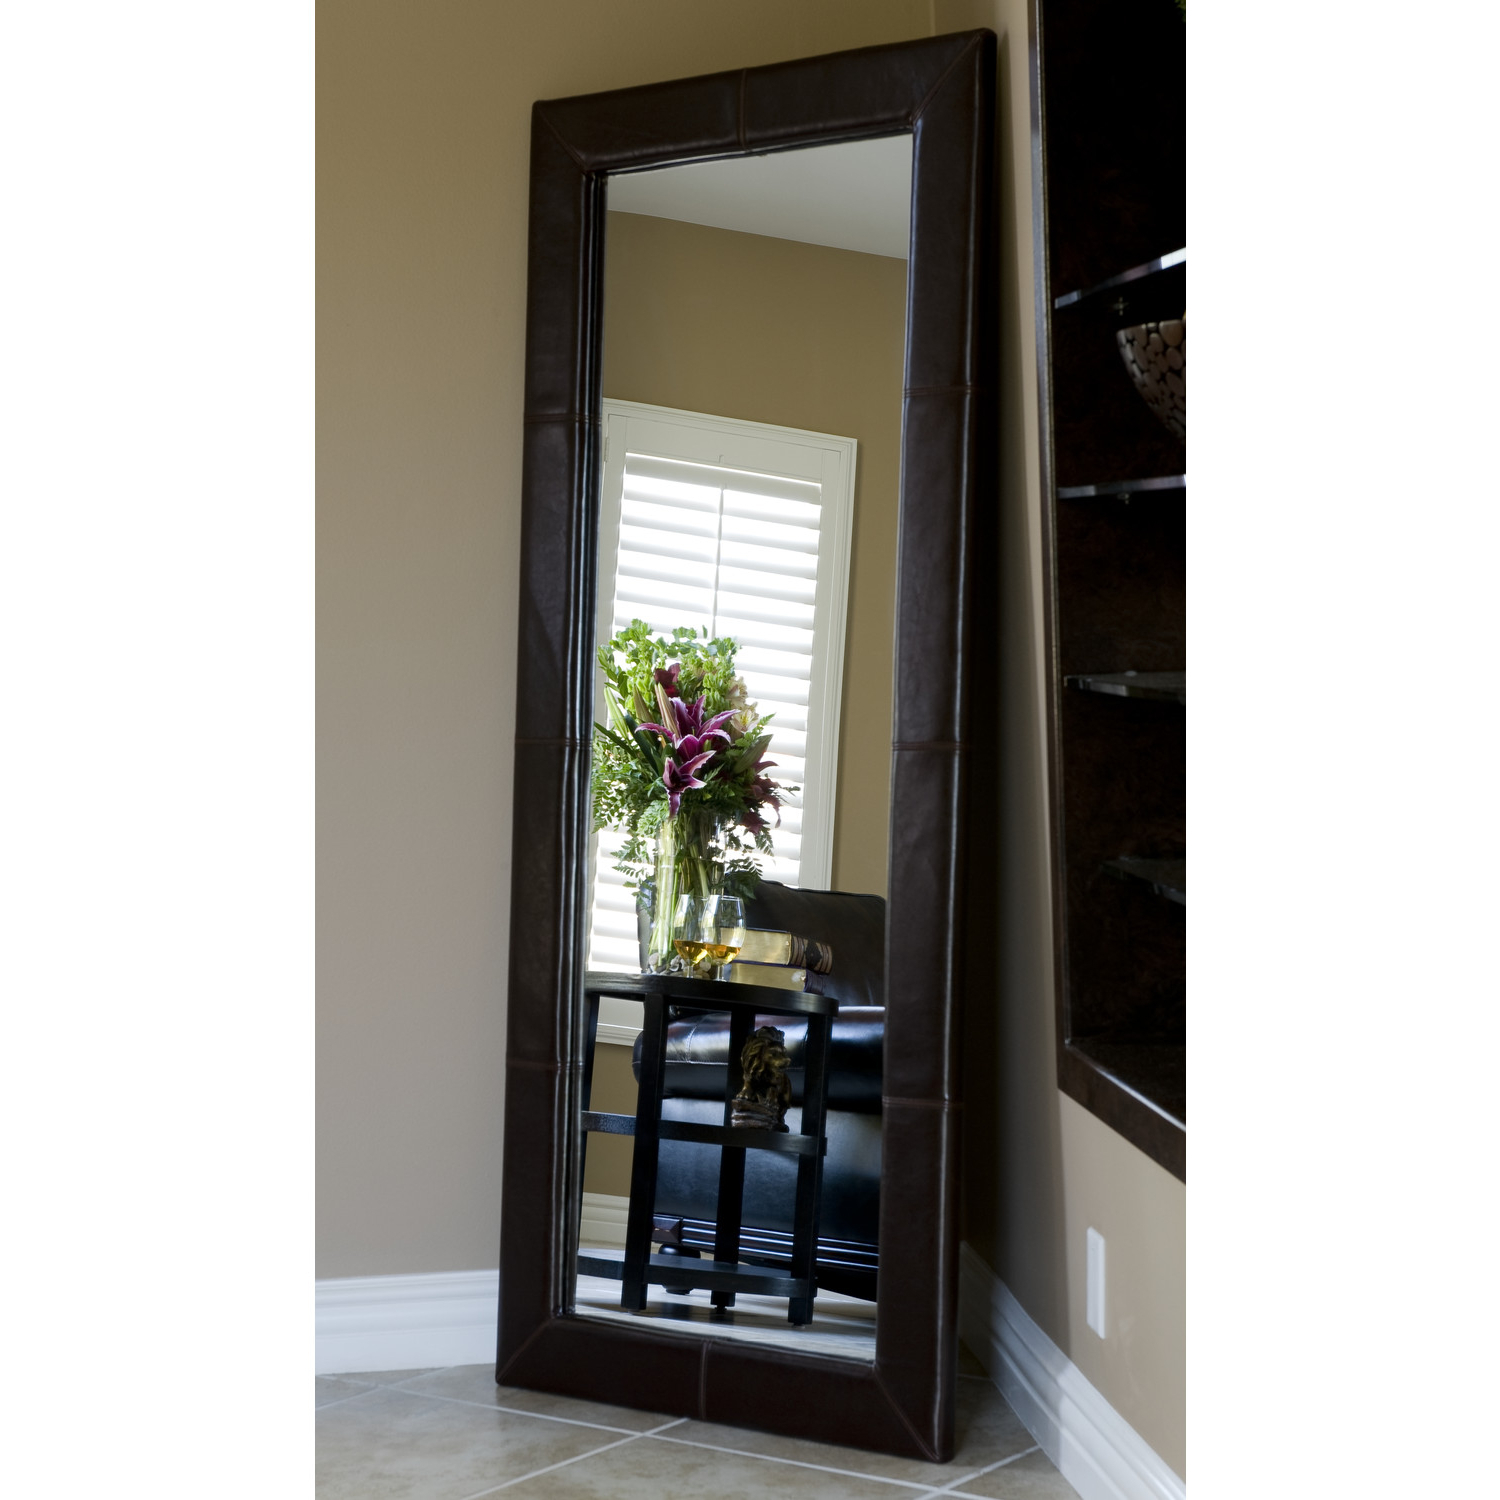 Most Up To Date Mirrors: Stylish Look And Trendy Design With Costco Mirrors With Regard To Stand Up Wall Mirrors (Gallery 2 of 20)